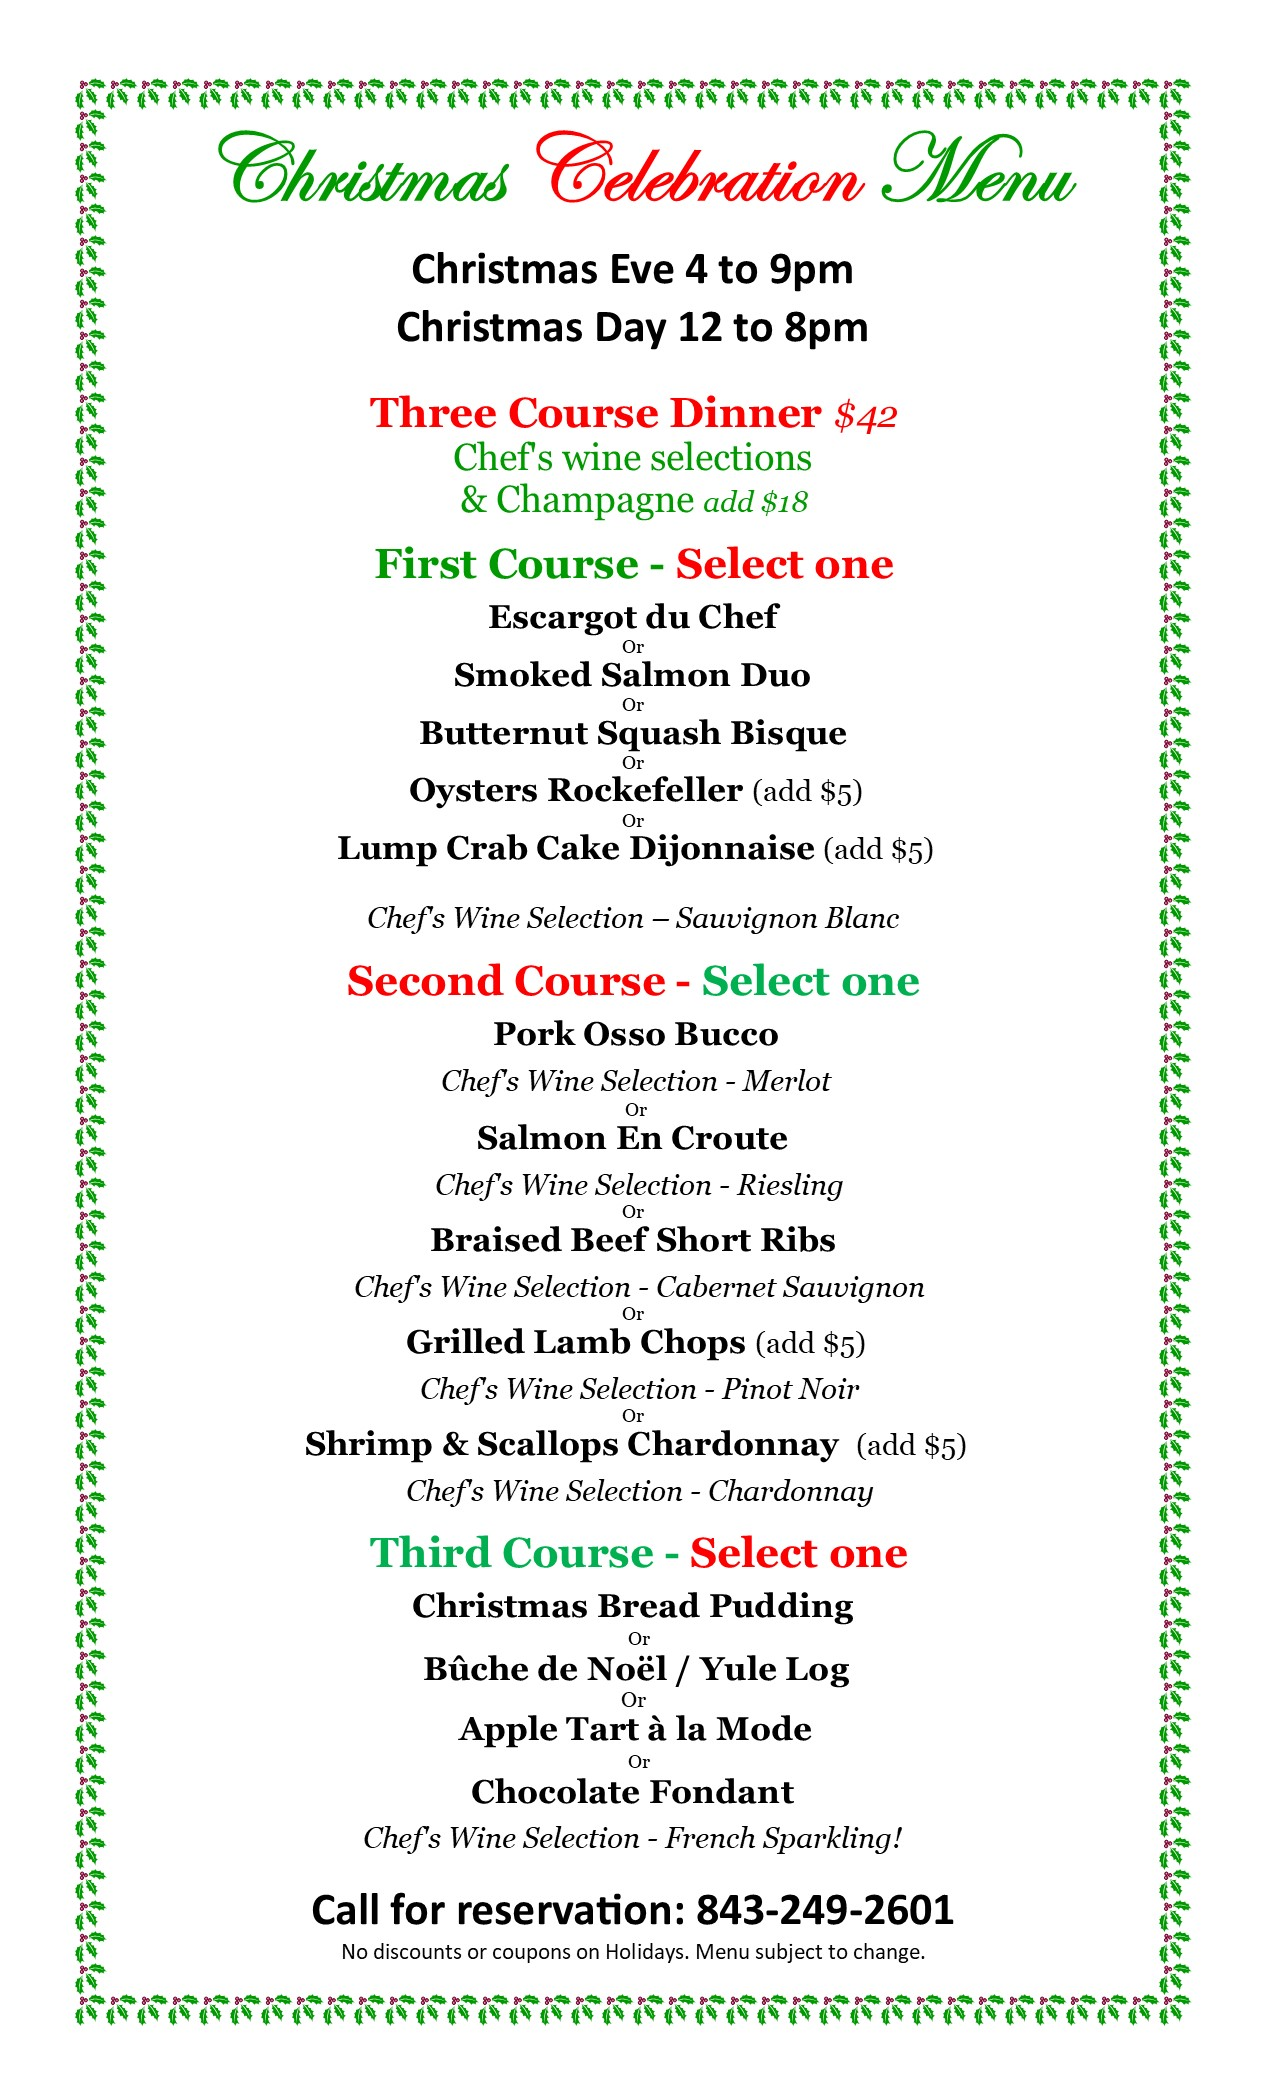 Christmas Celebration Menu Christmas Eve 4 to 9 pm Christmas Day 12 to 8 pm. Three Course Dinner $42. Chef's Wine Selections & Champagne add $18.  First course- select one: Escargot Du Chef or Smoked Salmon Duo or Butternut Squash Bisque or Oysters Rockefeller ( Add $5) or Lump Crab Cake Dijonnaise ( Add $5) Chef's Wine Selection- Sauvignon Blanc. Second Course- Select one: Pork Osso Bucco Chef's Wine Selection- Merlot or Salmon En Croute  Chef's Wine Selection- Reidling or Brasied Beef Short Ribs Chef's Wine selection- Cabernet Sauvignon or Grilled Lamb Chops ( Add $5) Chef's Wine selection- Pinot Noir or Shrimp & Scallops Chardonnay ( Add $5)  Chef's Wine Selection- Chardonnay. Third Course- Select one: Christmas Bread Pudding or Buche de Noel/ Yule Log or Apple Tart a la Mode or Chocolate fondant. Chef's wine selection- French Sparking. Call for Reservations: 843-249-2601. No discounts or coupons on Holidays. Menu is subject to change.